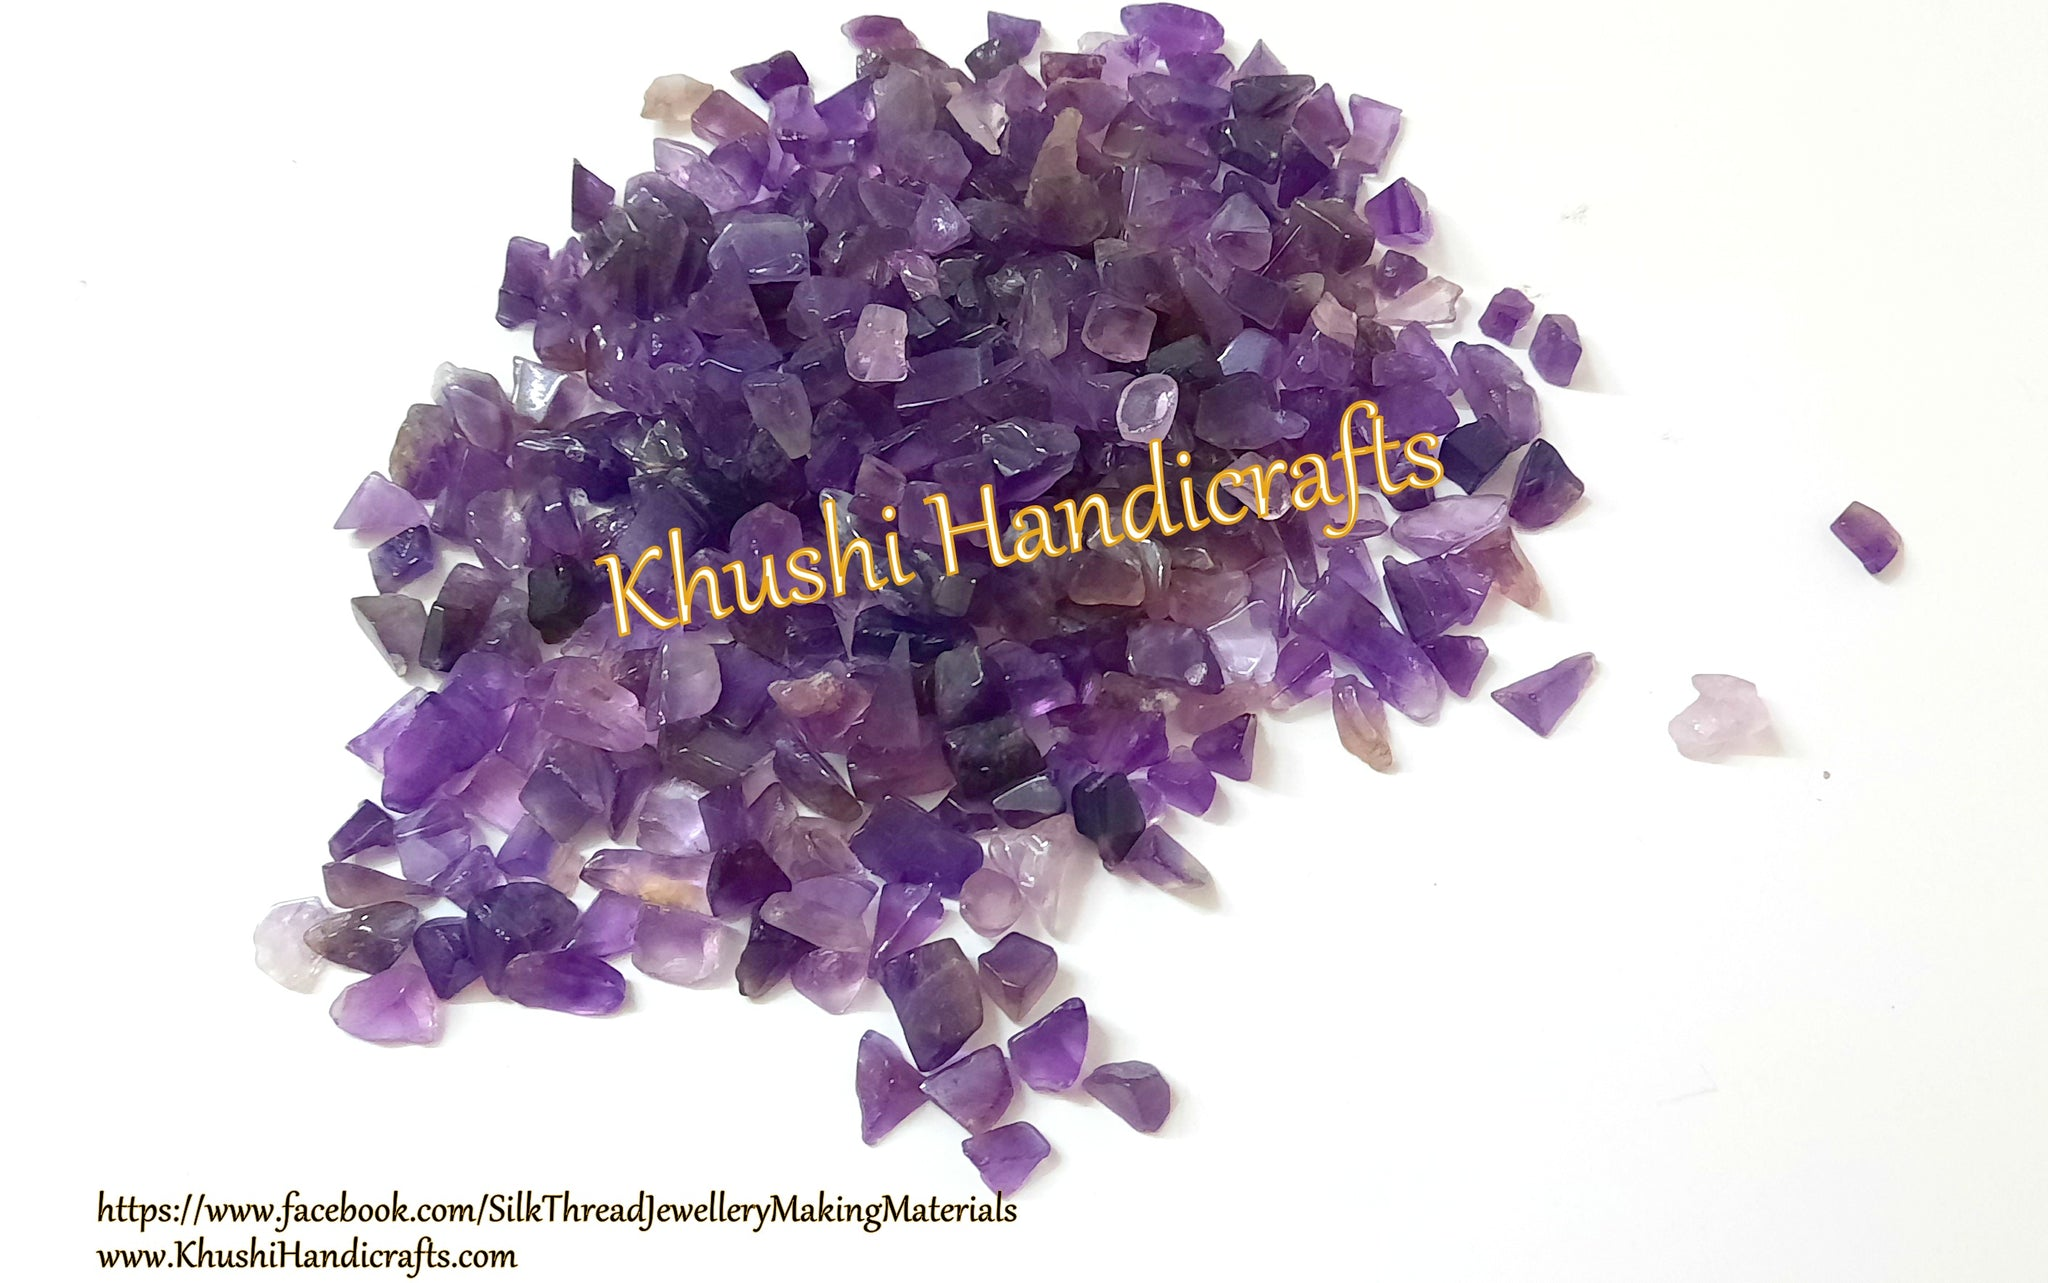 Amethyst quartz chips